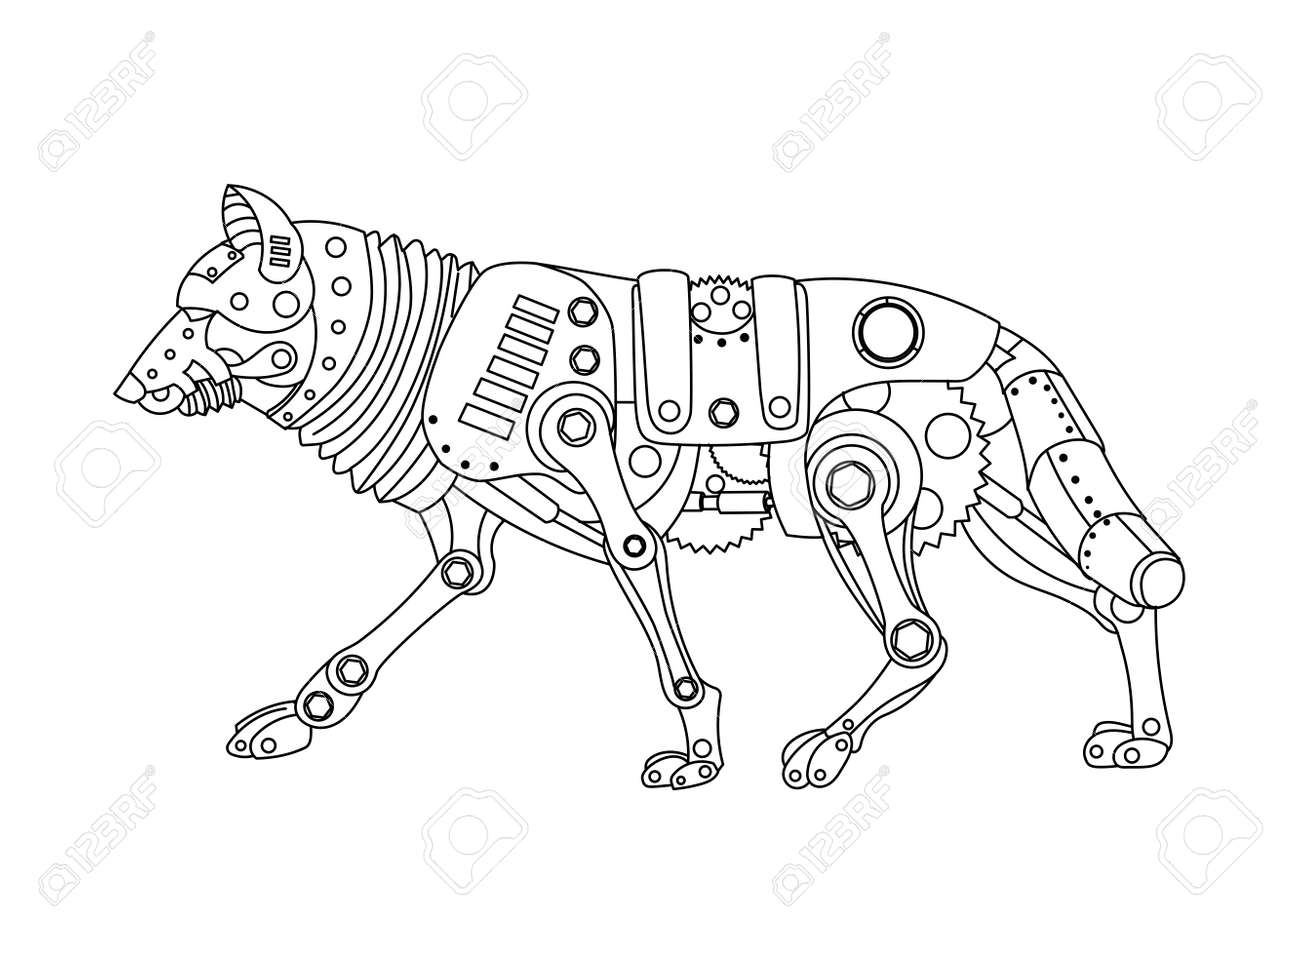 ste unk style wolf mechanical animal coloring book for adult  ste unk style wolf mechanical animal coloring book for adult vector illustration stock vector